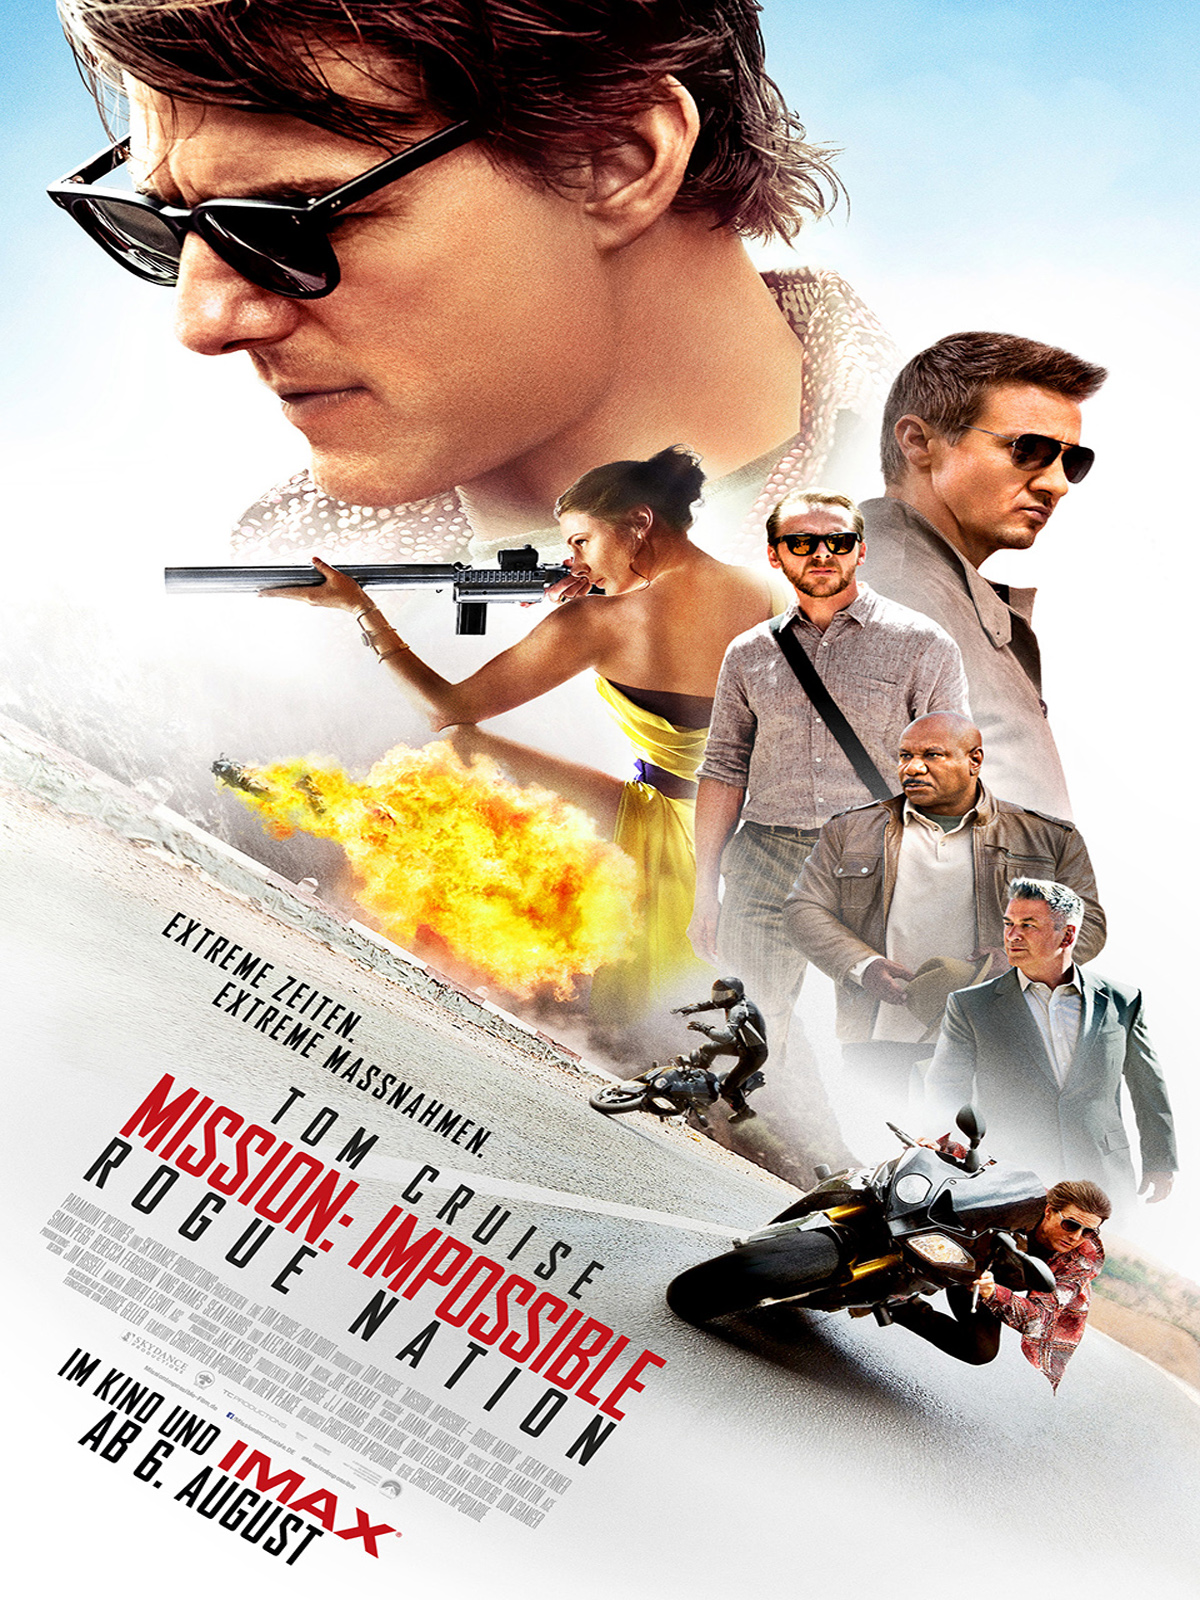 Mission Impossible 5 Movie4k